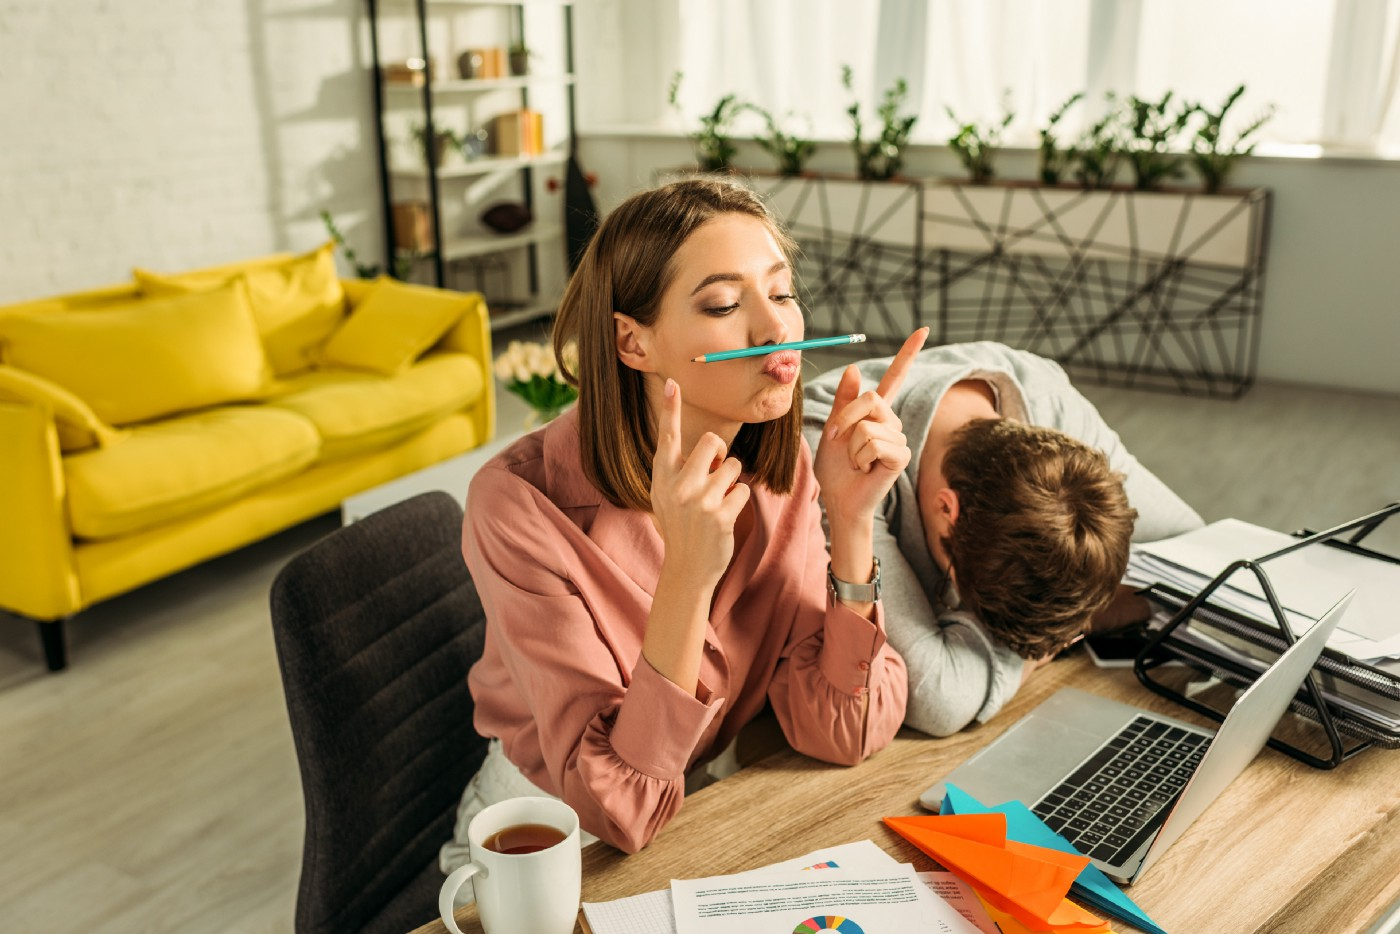 Bored woman at computer with man sleeping on desk next to her.